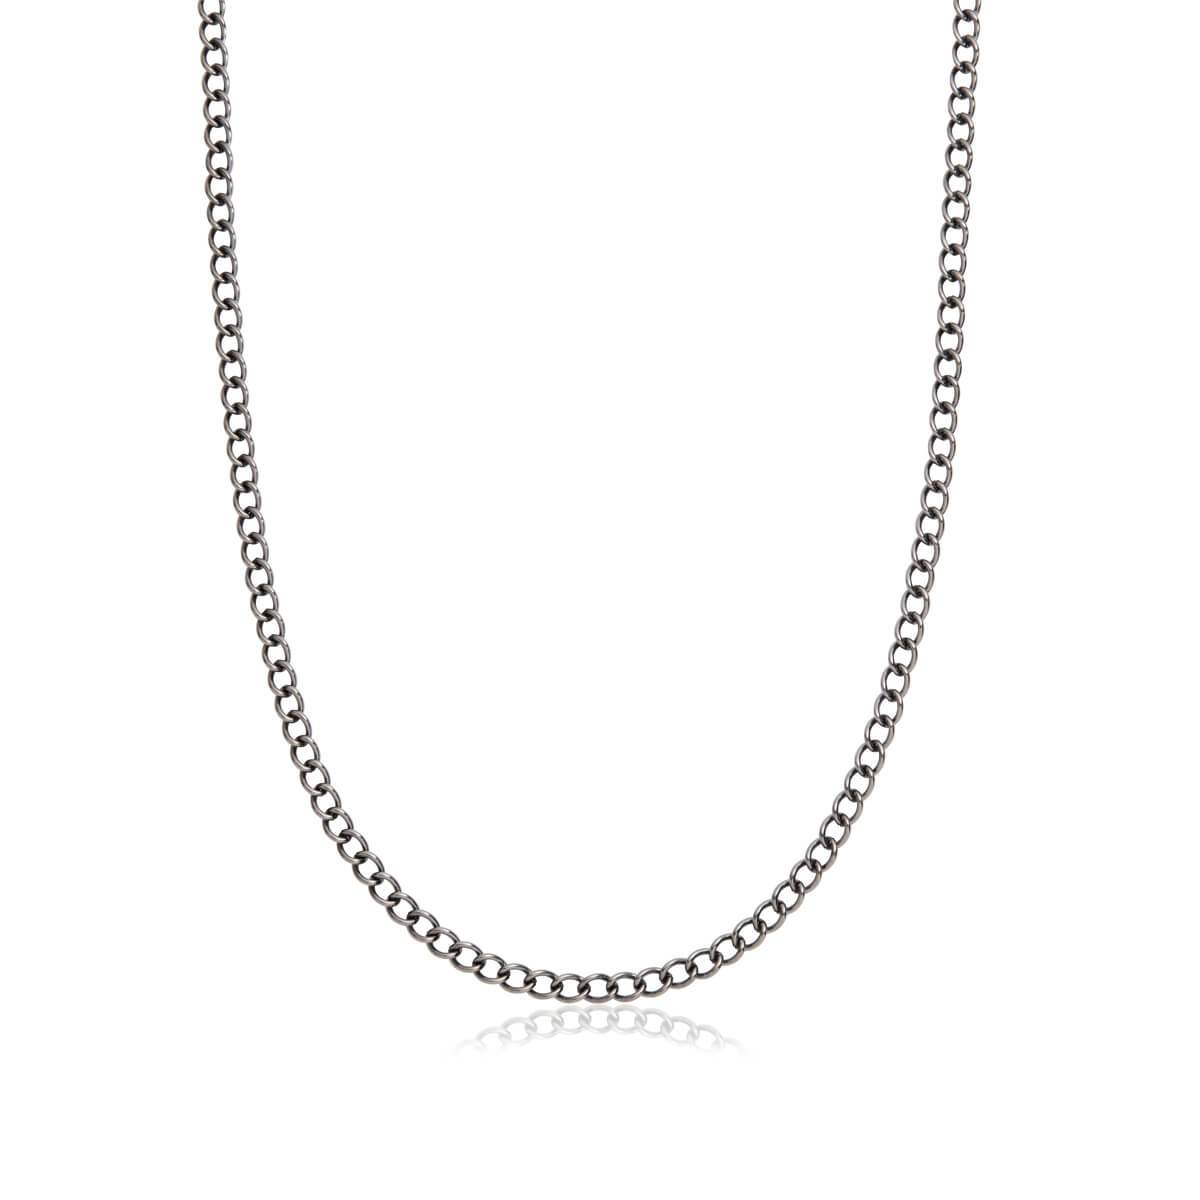 Curb Chain Necklace 20 in (Gun Silver)